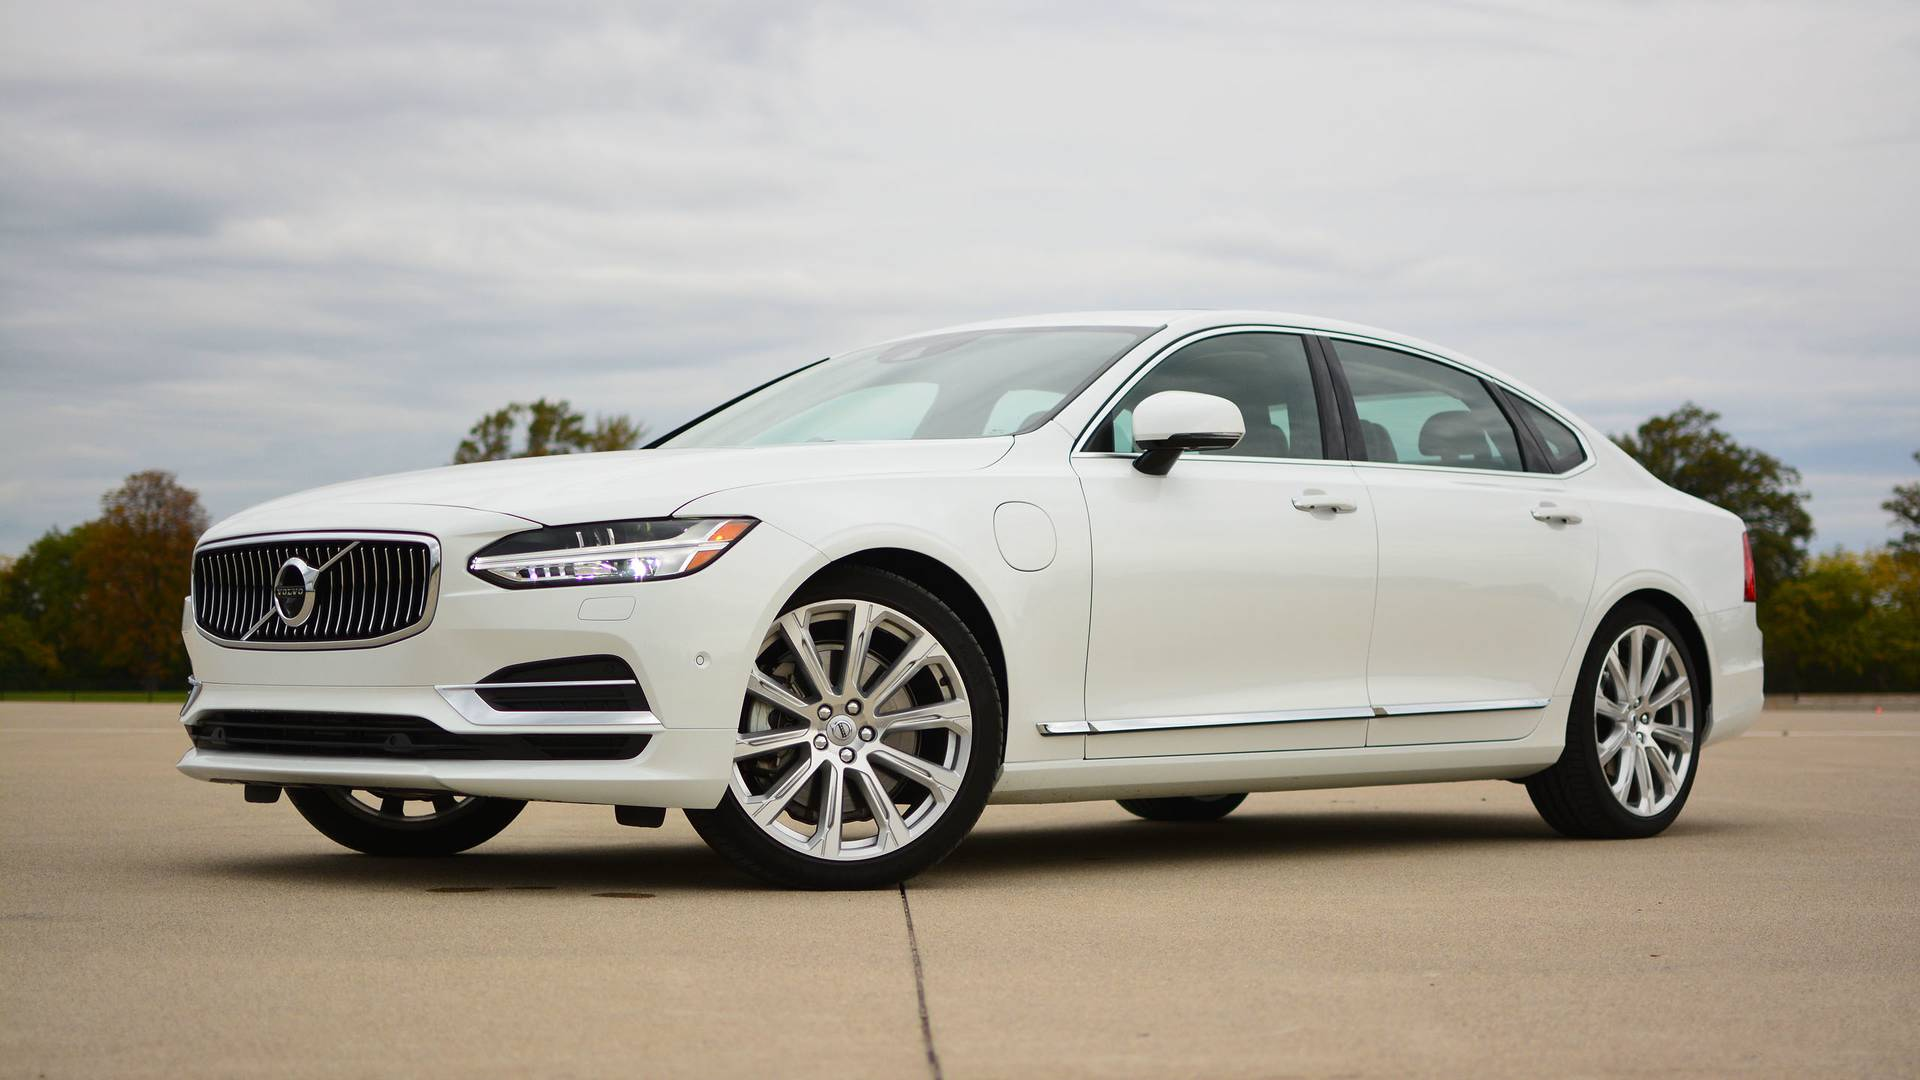 Top 10 Luxury Cars >> 2018 Volvo S90 T8 Review: Efficiency Done With Style